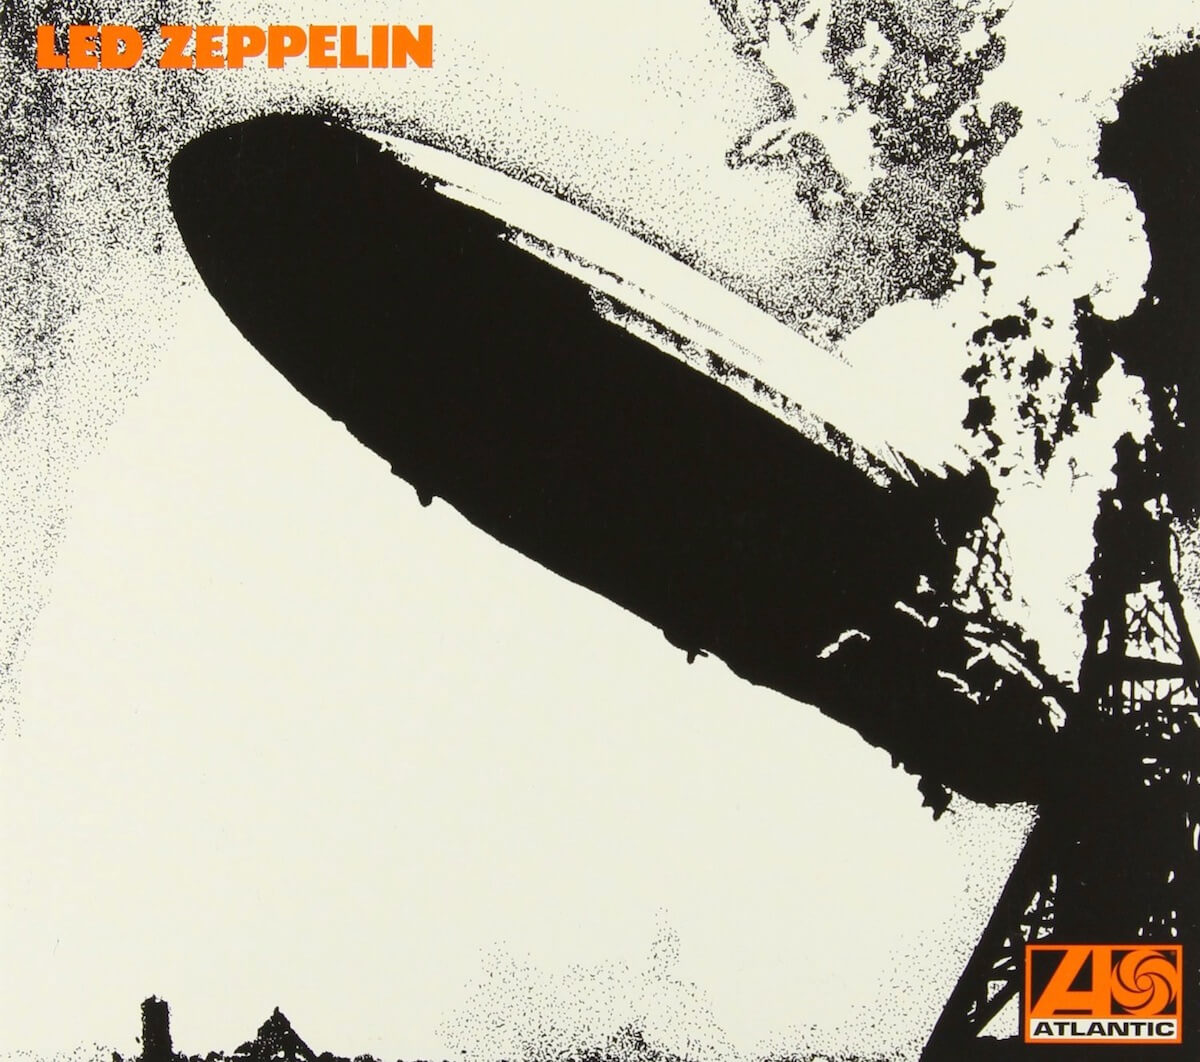 Portada del disco Led Zeppelin I